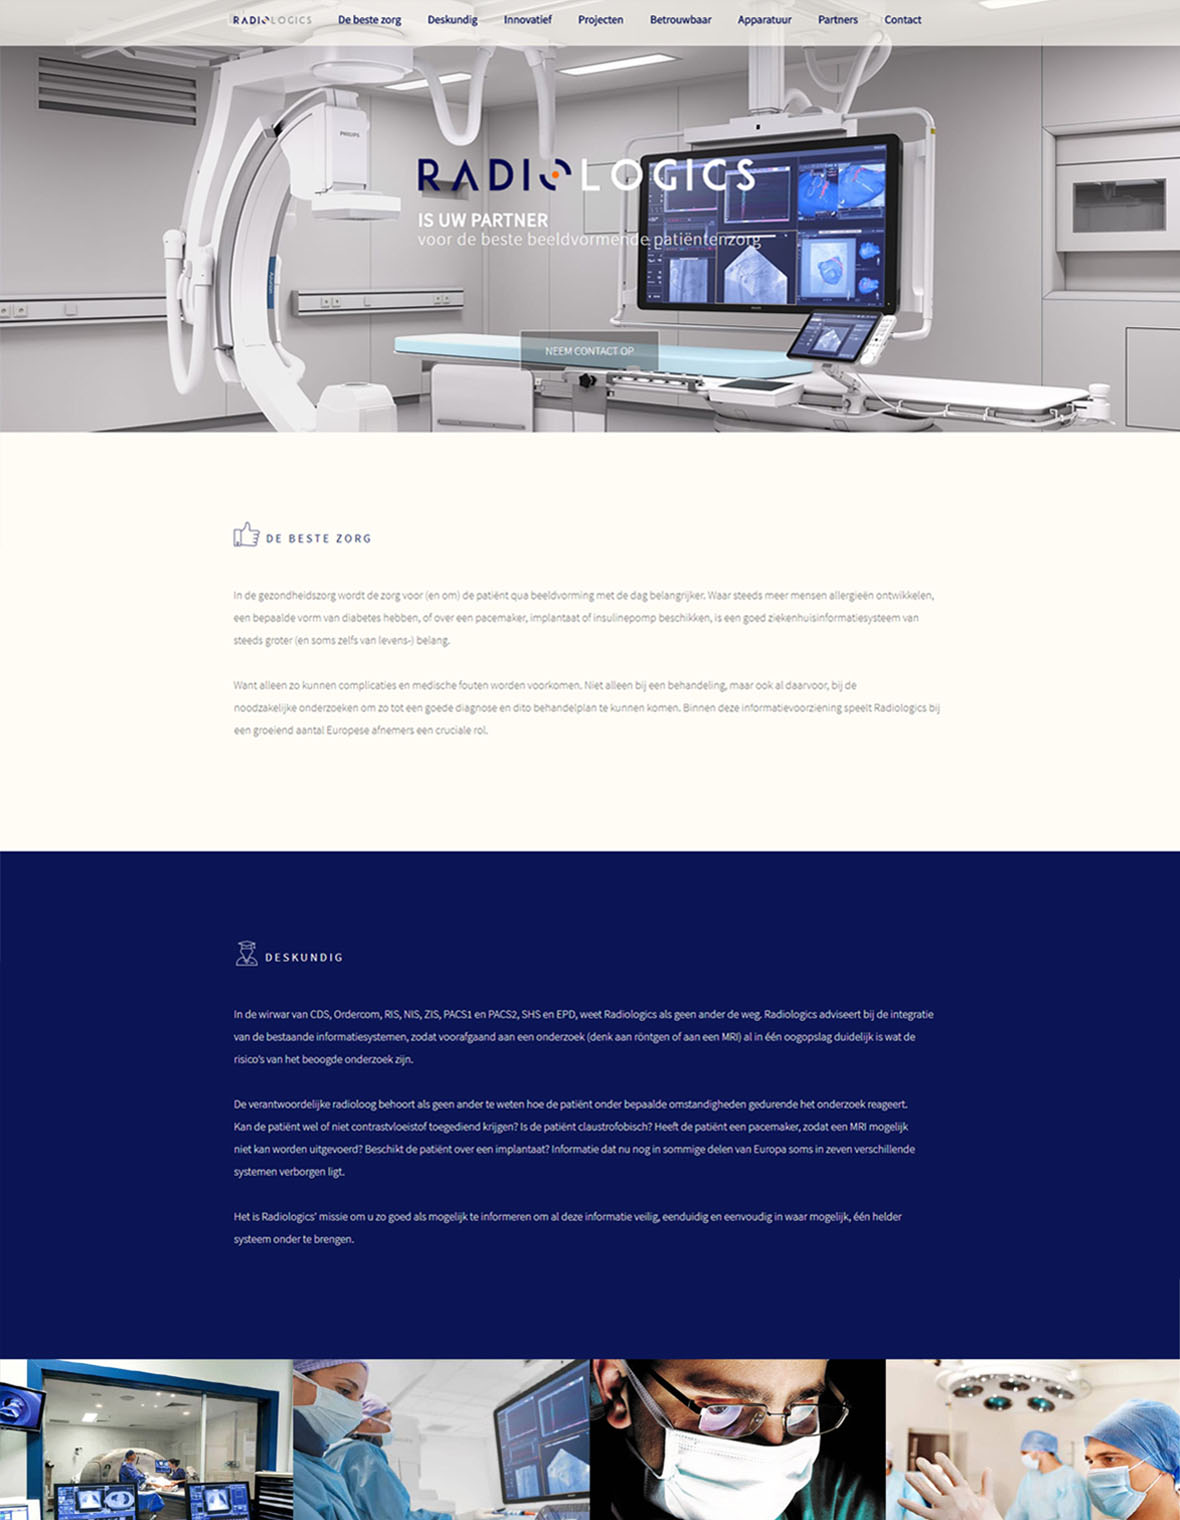 Webdesign website radiologics